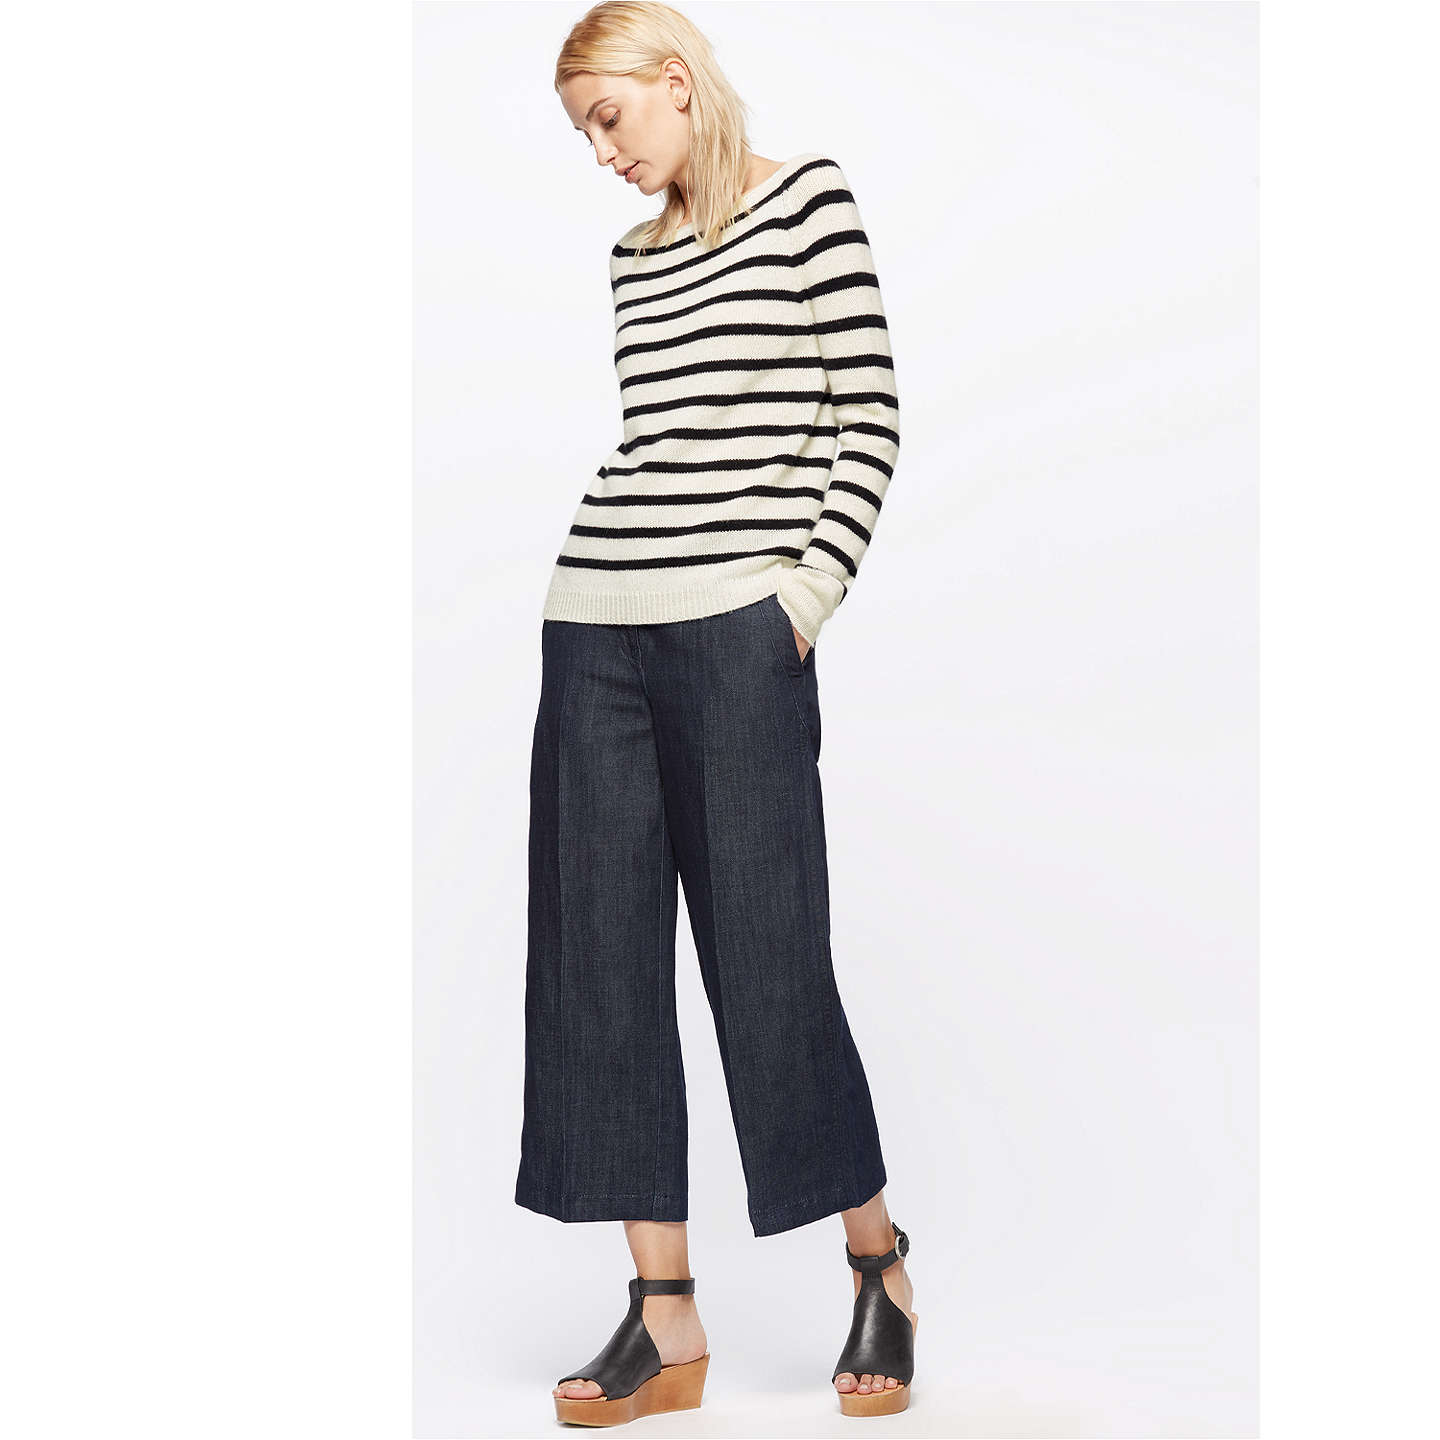 BuyJigsaw Edie Stripe Cashmere Sweater, Black, XS Online at johnlewis.com